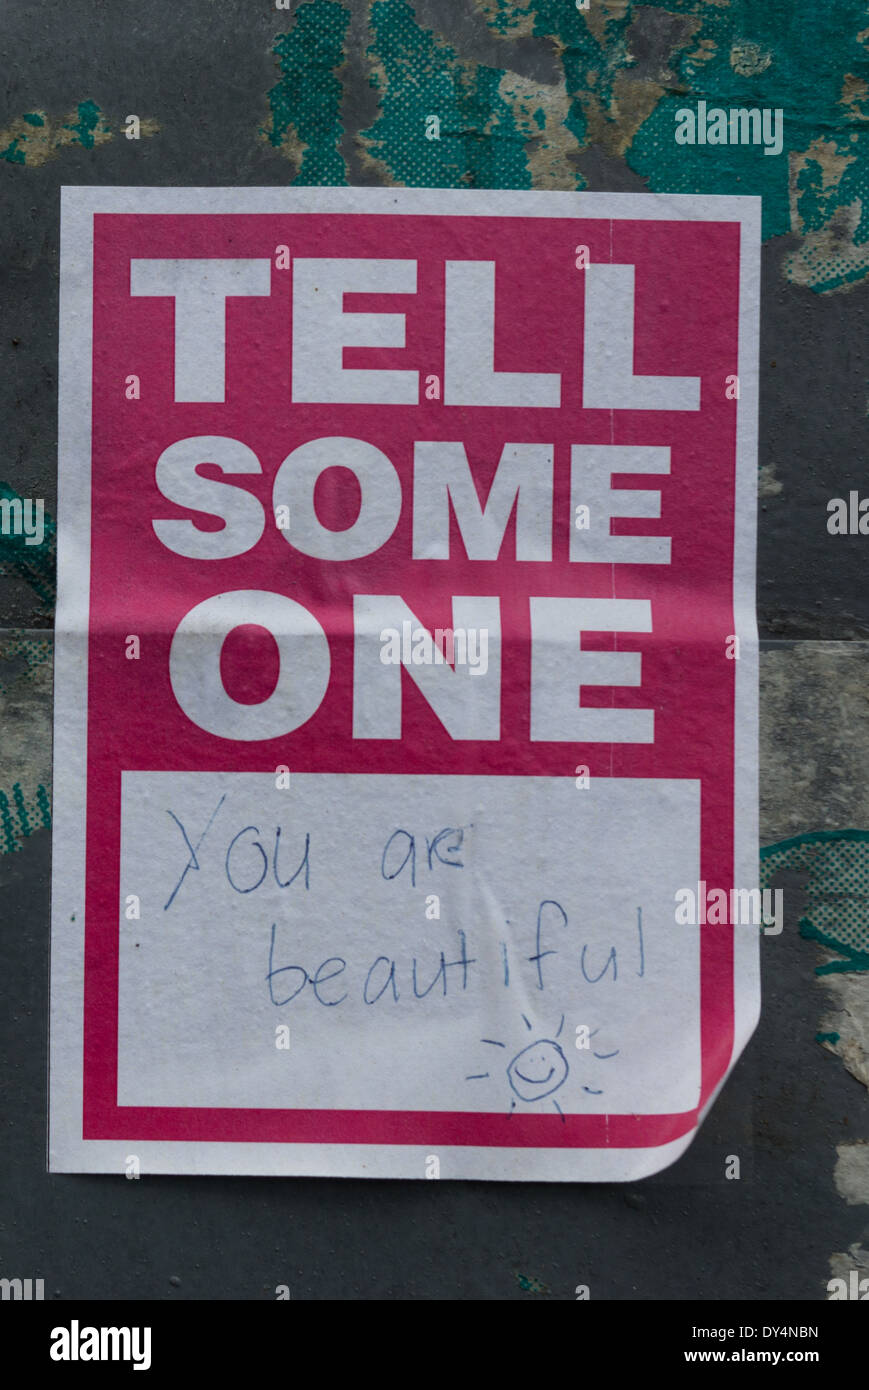 Tell someone you are beautiful - Stock Image